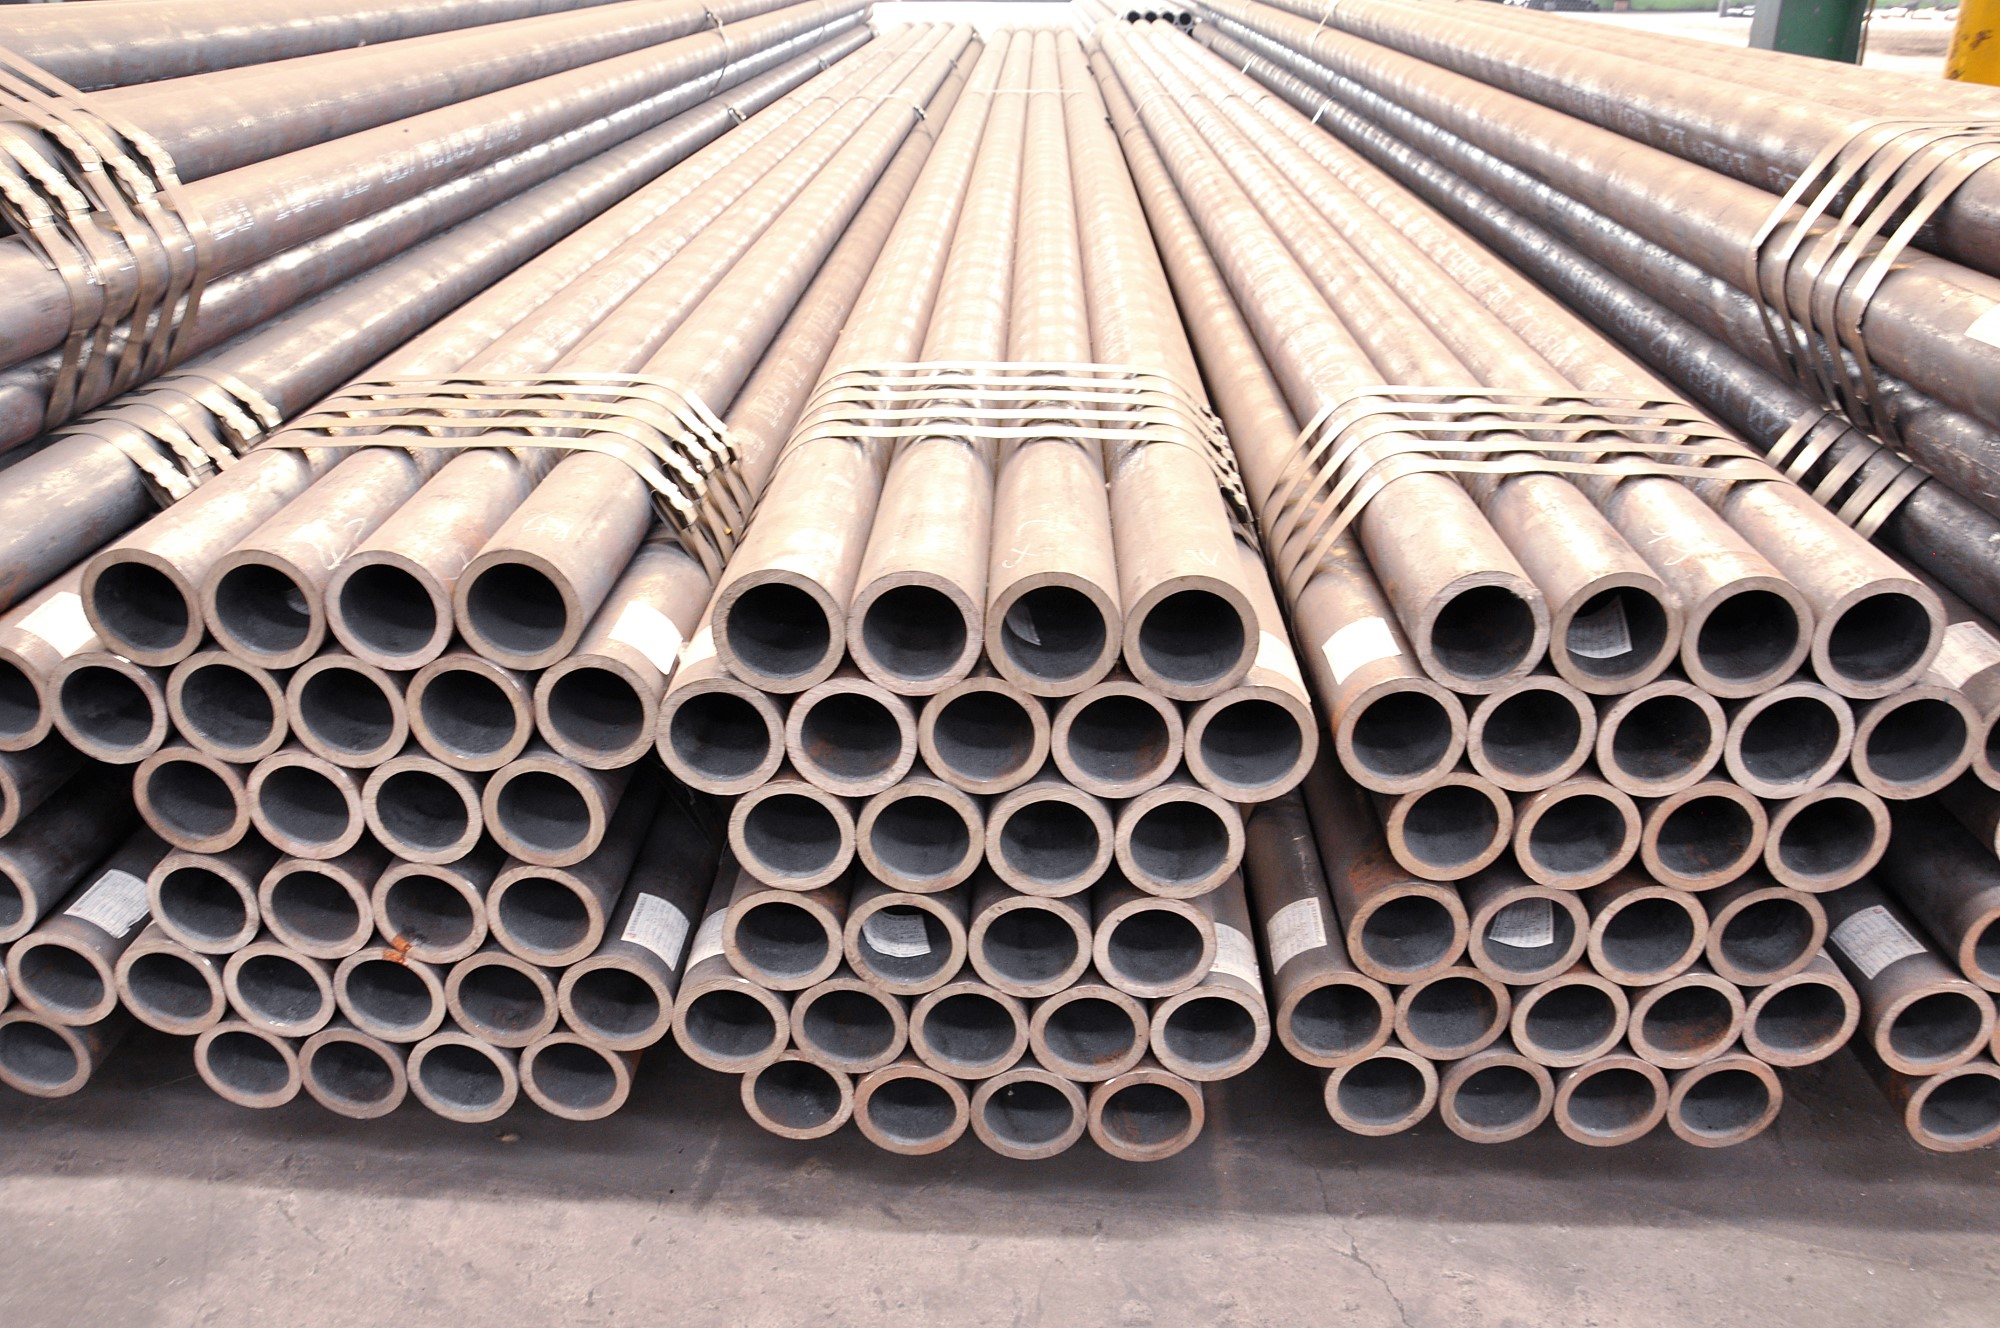 Grade Q345 Liquid Delivery Seamless Steel Pipes Introduction